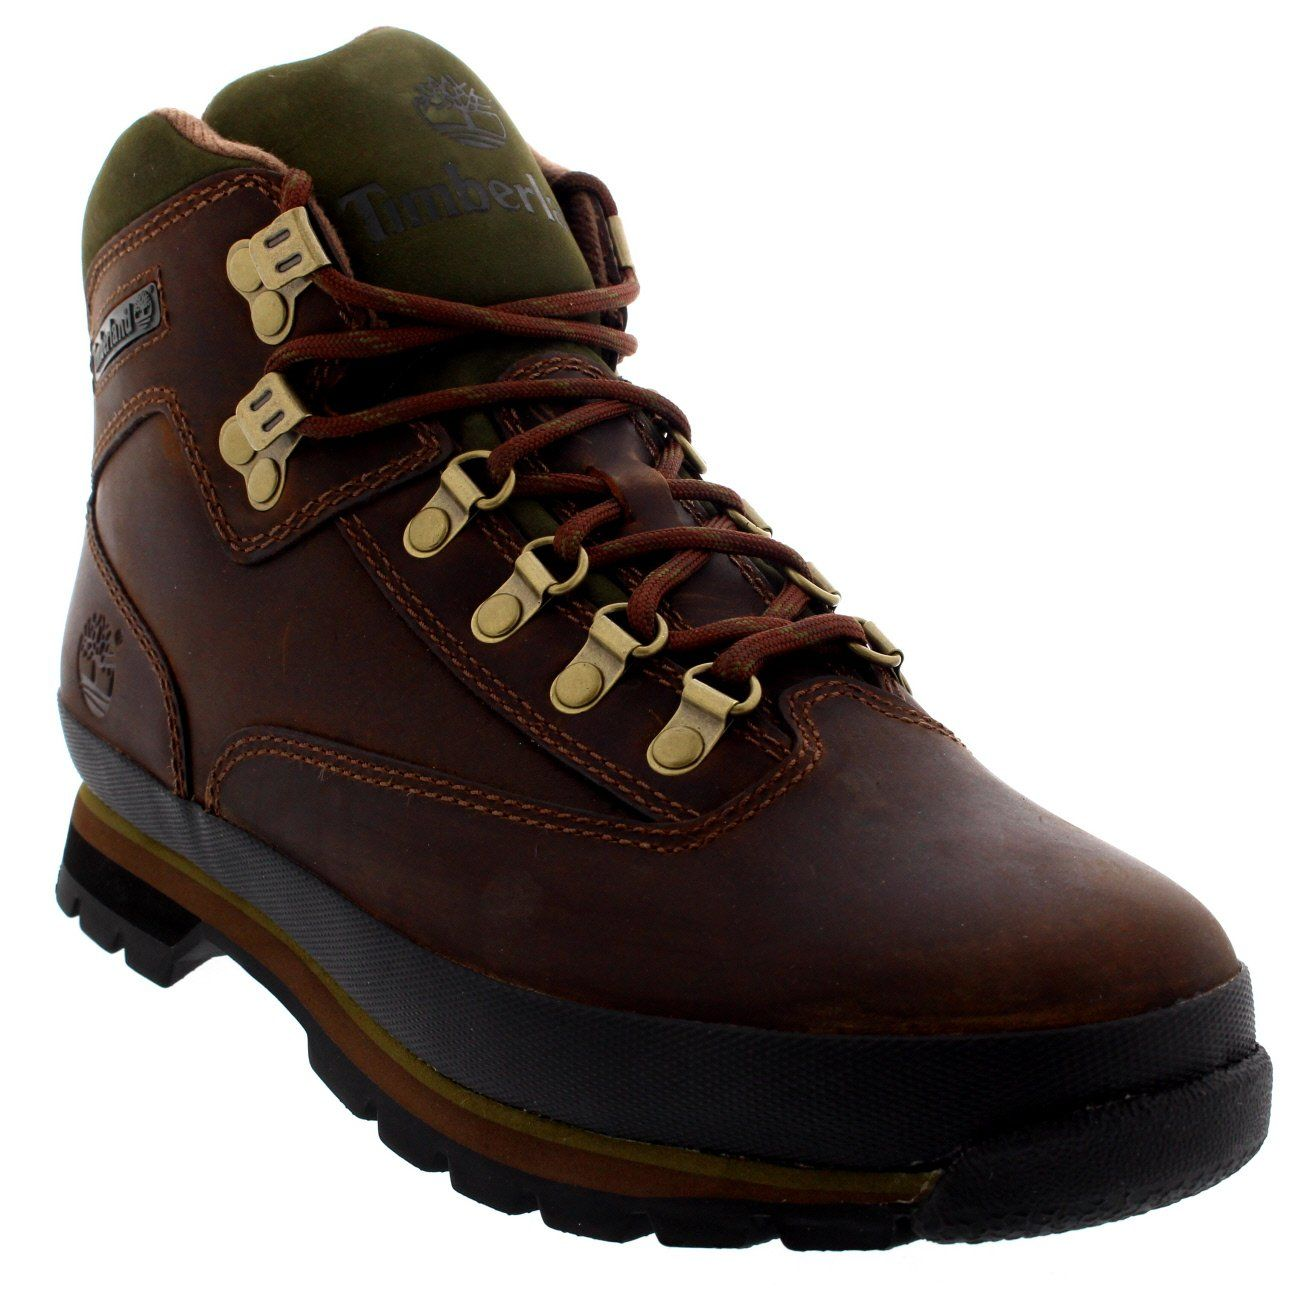 55fc047c63bc9 Timberland Mens Heritage Euro Hiker Walking Brown Hiking Ankle Boots -  Brown - 11.5 -- Nice to have you for visiting our picture.